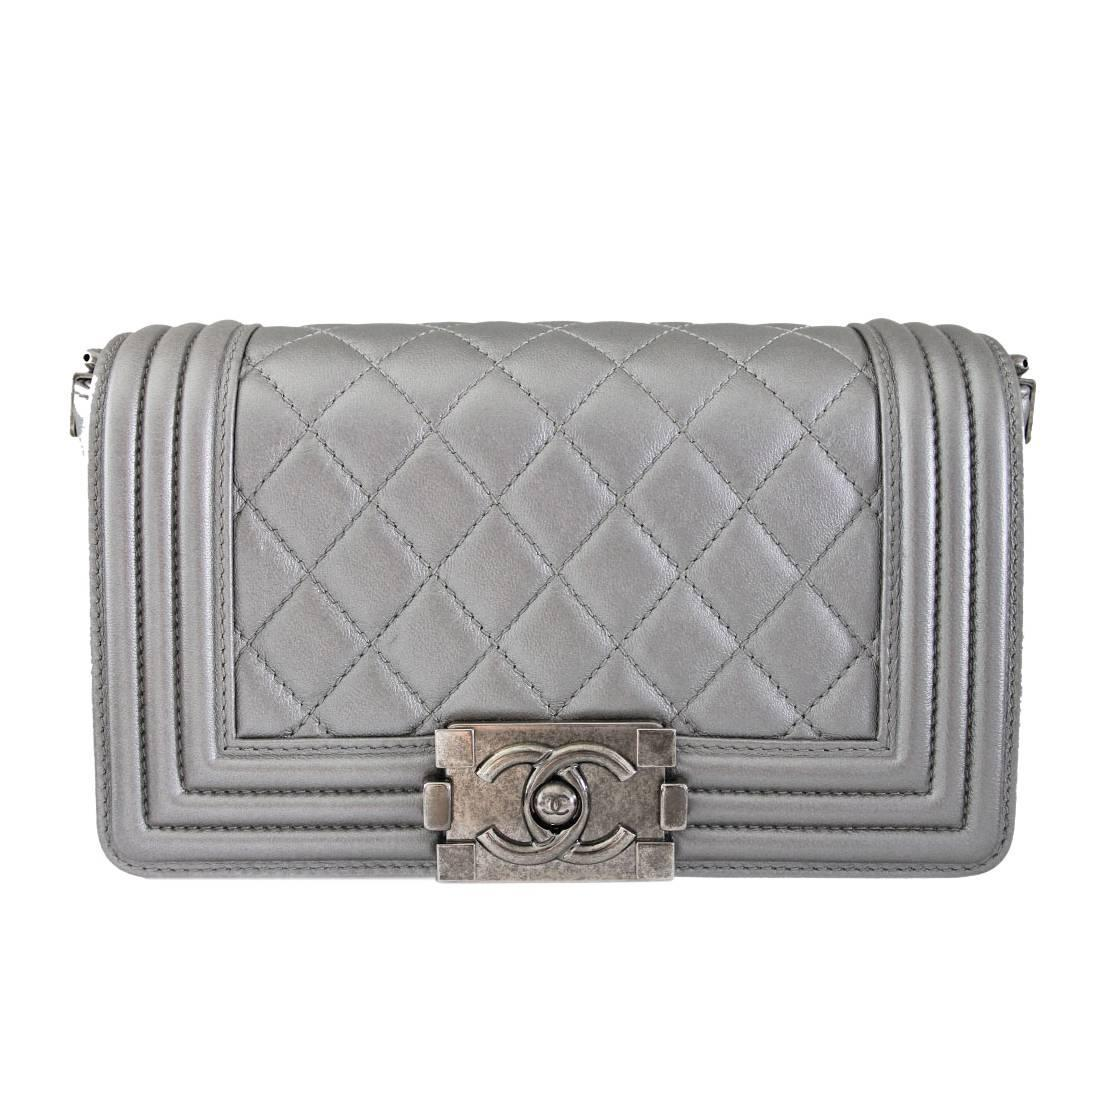 c26a7ded81283b Chanel Silver Boy Bag Quilted Leather Stingray Strap SHW Flap Bag at 1stdibs